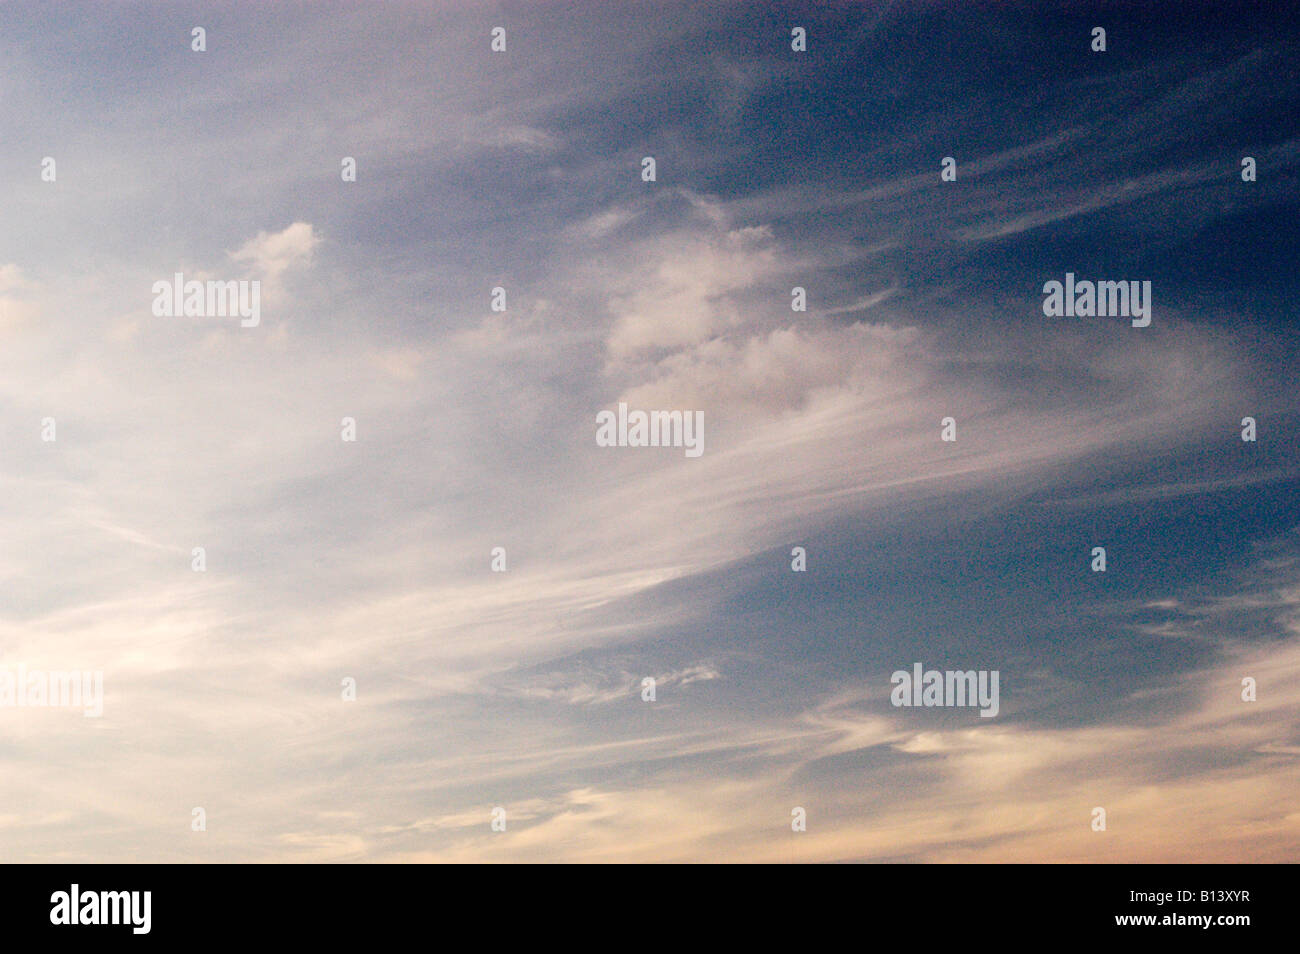 CIRRUS CLOUDS IN EVENING SKY - Stock Image